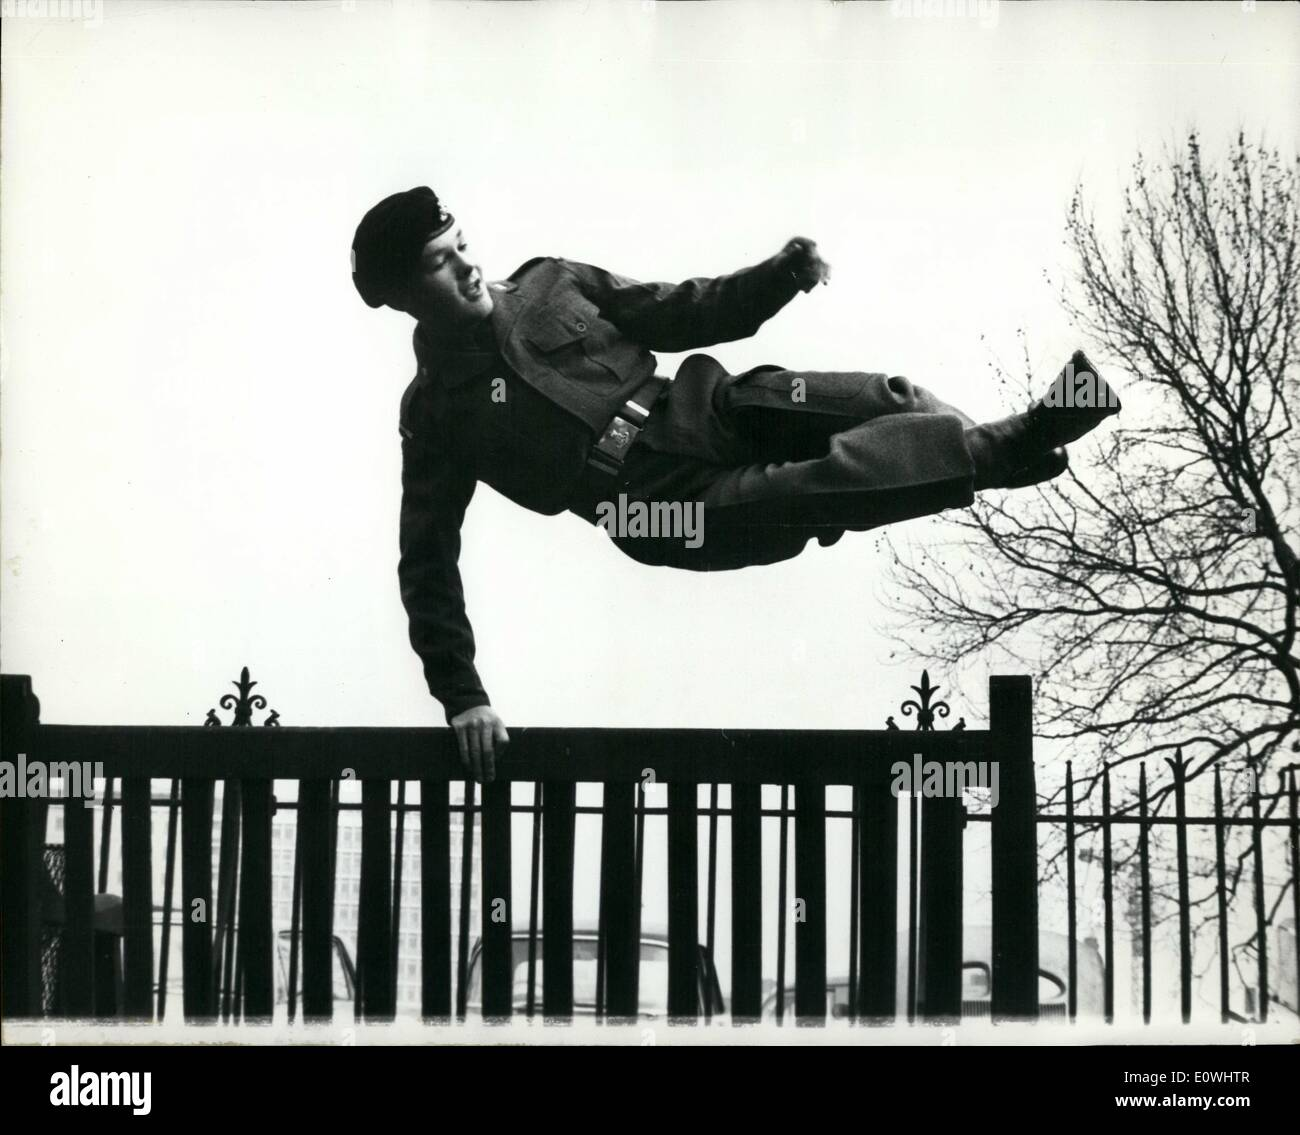 Feb. 02, 1963 - The army wanted to demo ''Orphan Joe'' - But he proves he is fit - to soldier on. Seventeen year old Joe Hardisty who was told that he was medically unfit for Army service - jumped for joy yesterday. He leaped from a 12 ft. concrete block outside the Tate gallery in London after passing a tough three hour medical examination at the nearby Millbank hospital. Seven weeks ago - Private Joe - an orphan was told he would have to be discharged because of a minor ches ailment.. Because he was so keen - his - C.O. appealed to the top Army bass for Joe to be given another medical - Stock Image